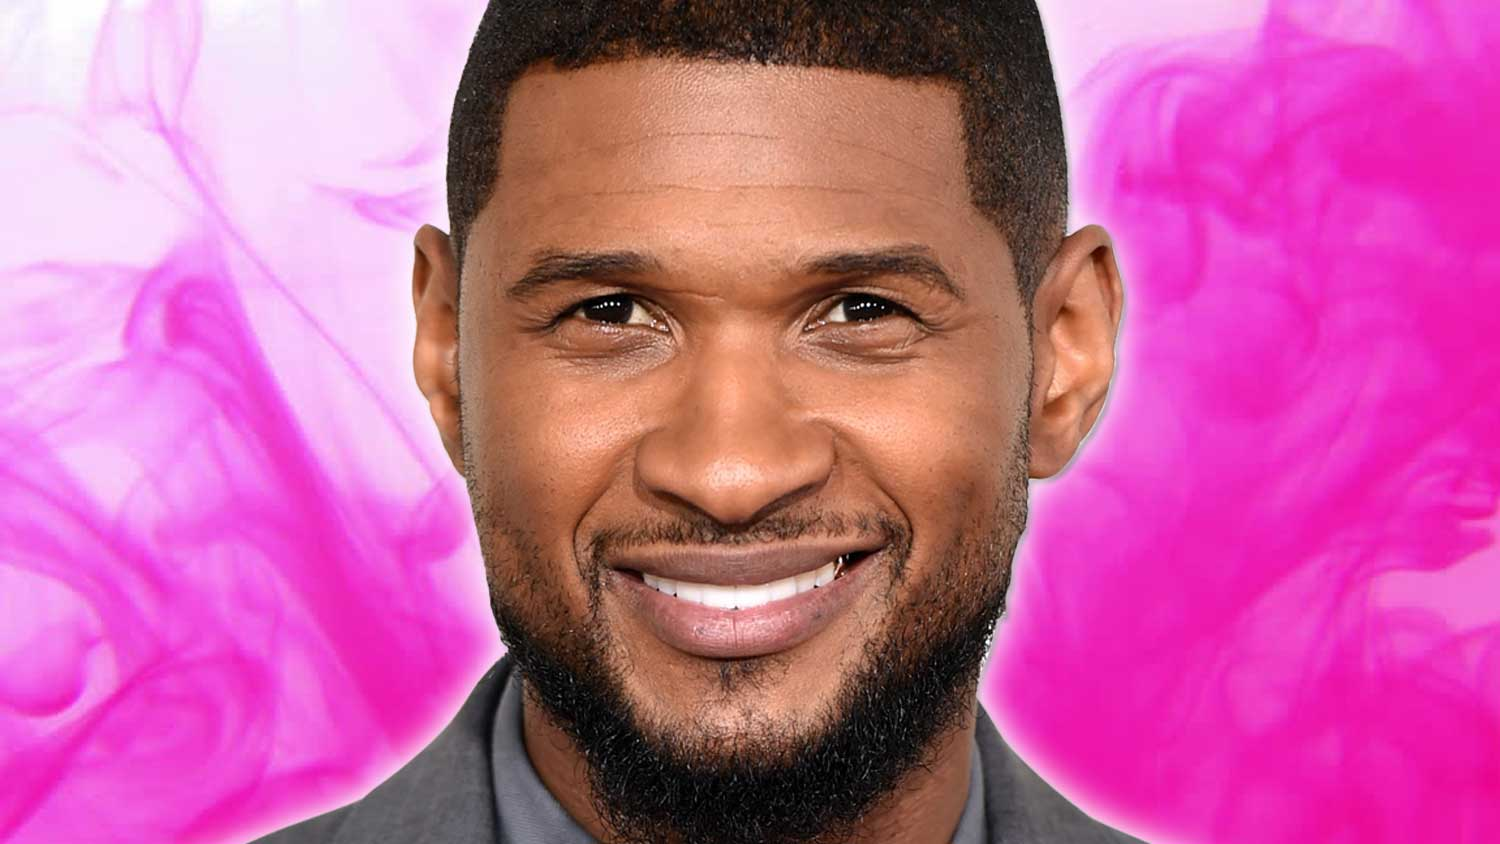 Usher tried Slutty Vegan burgers